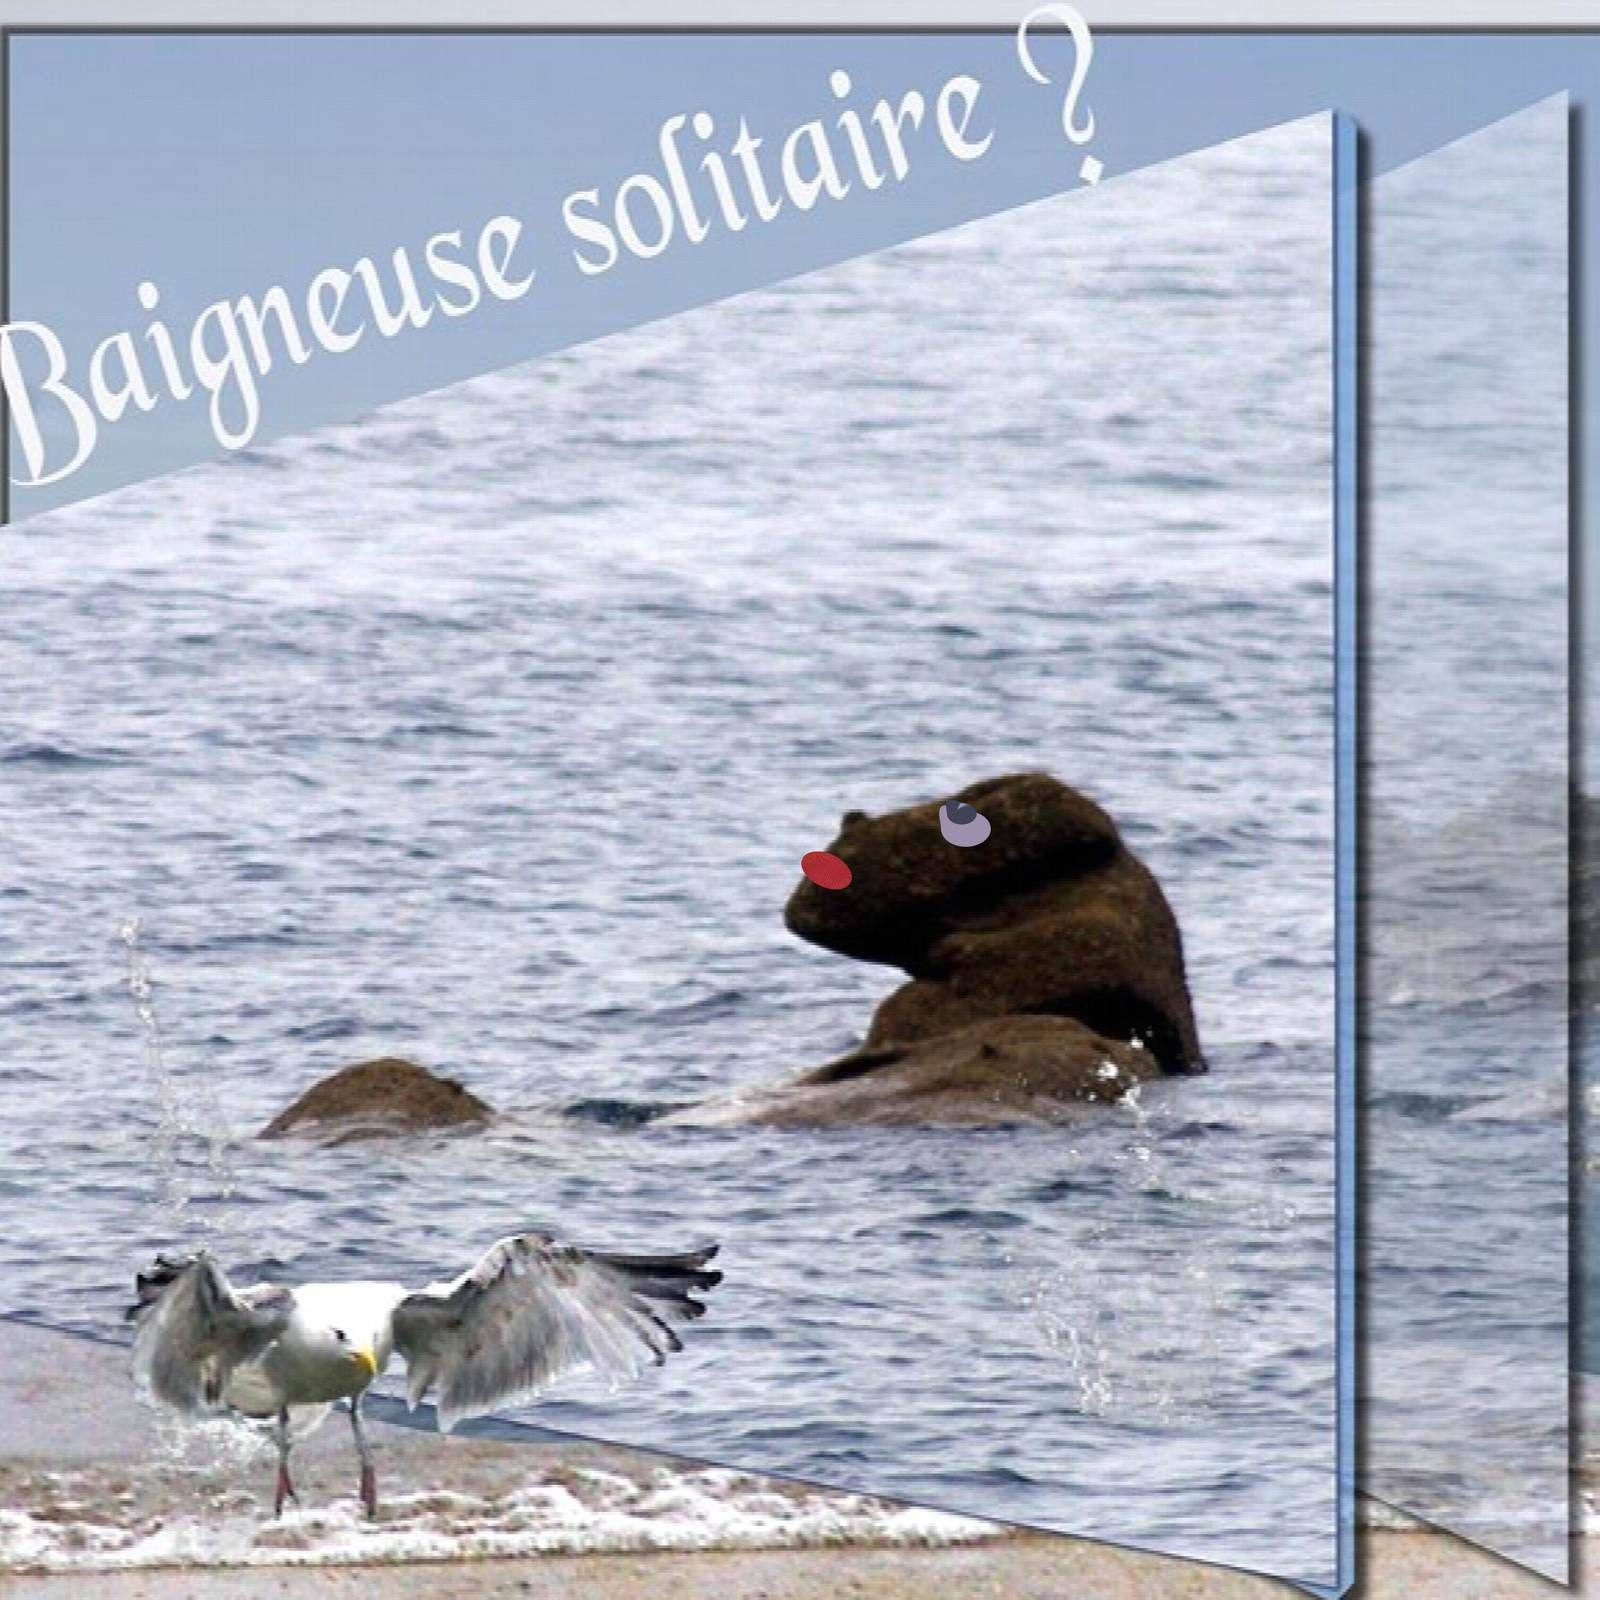 Baigneuse solitaire